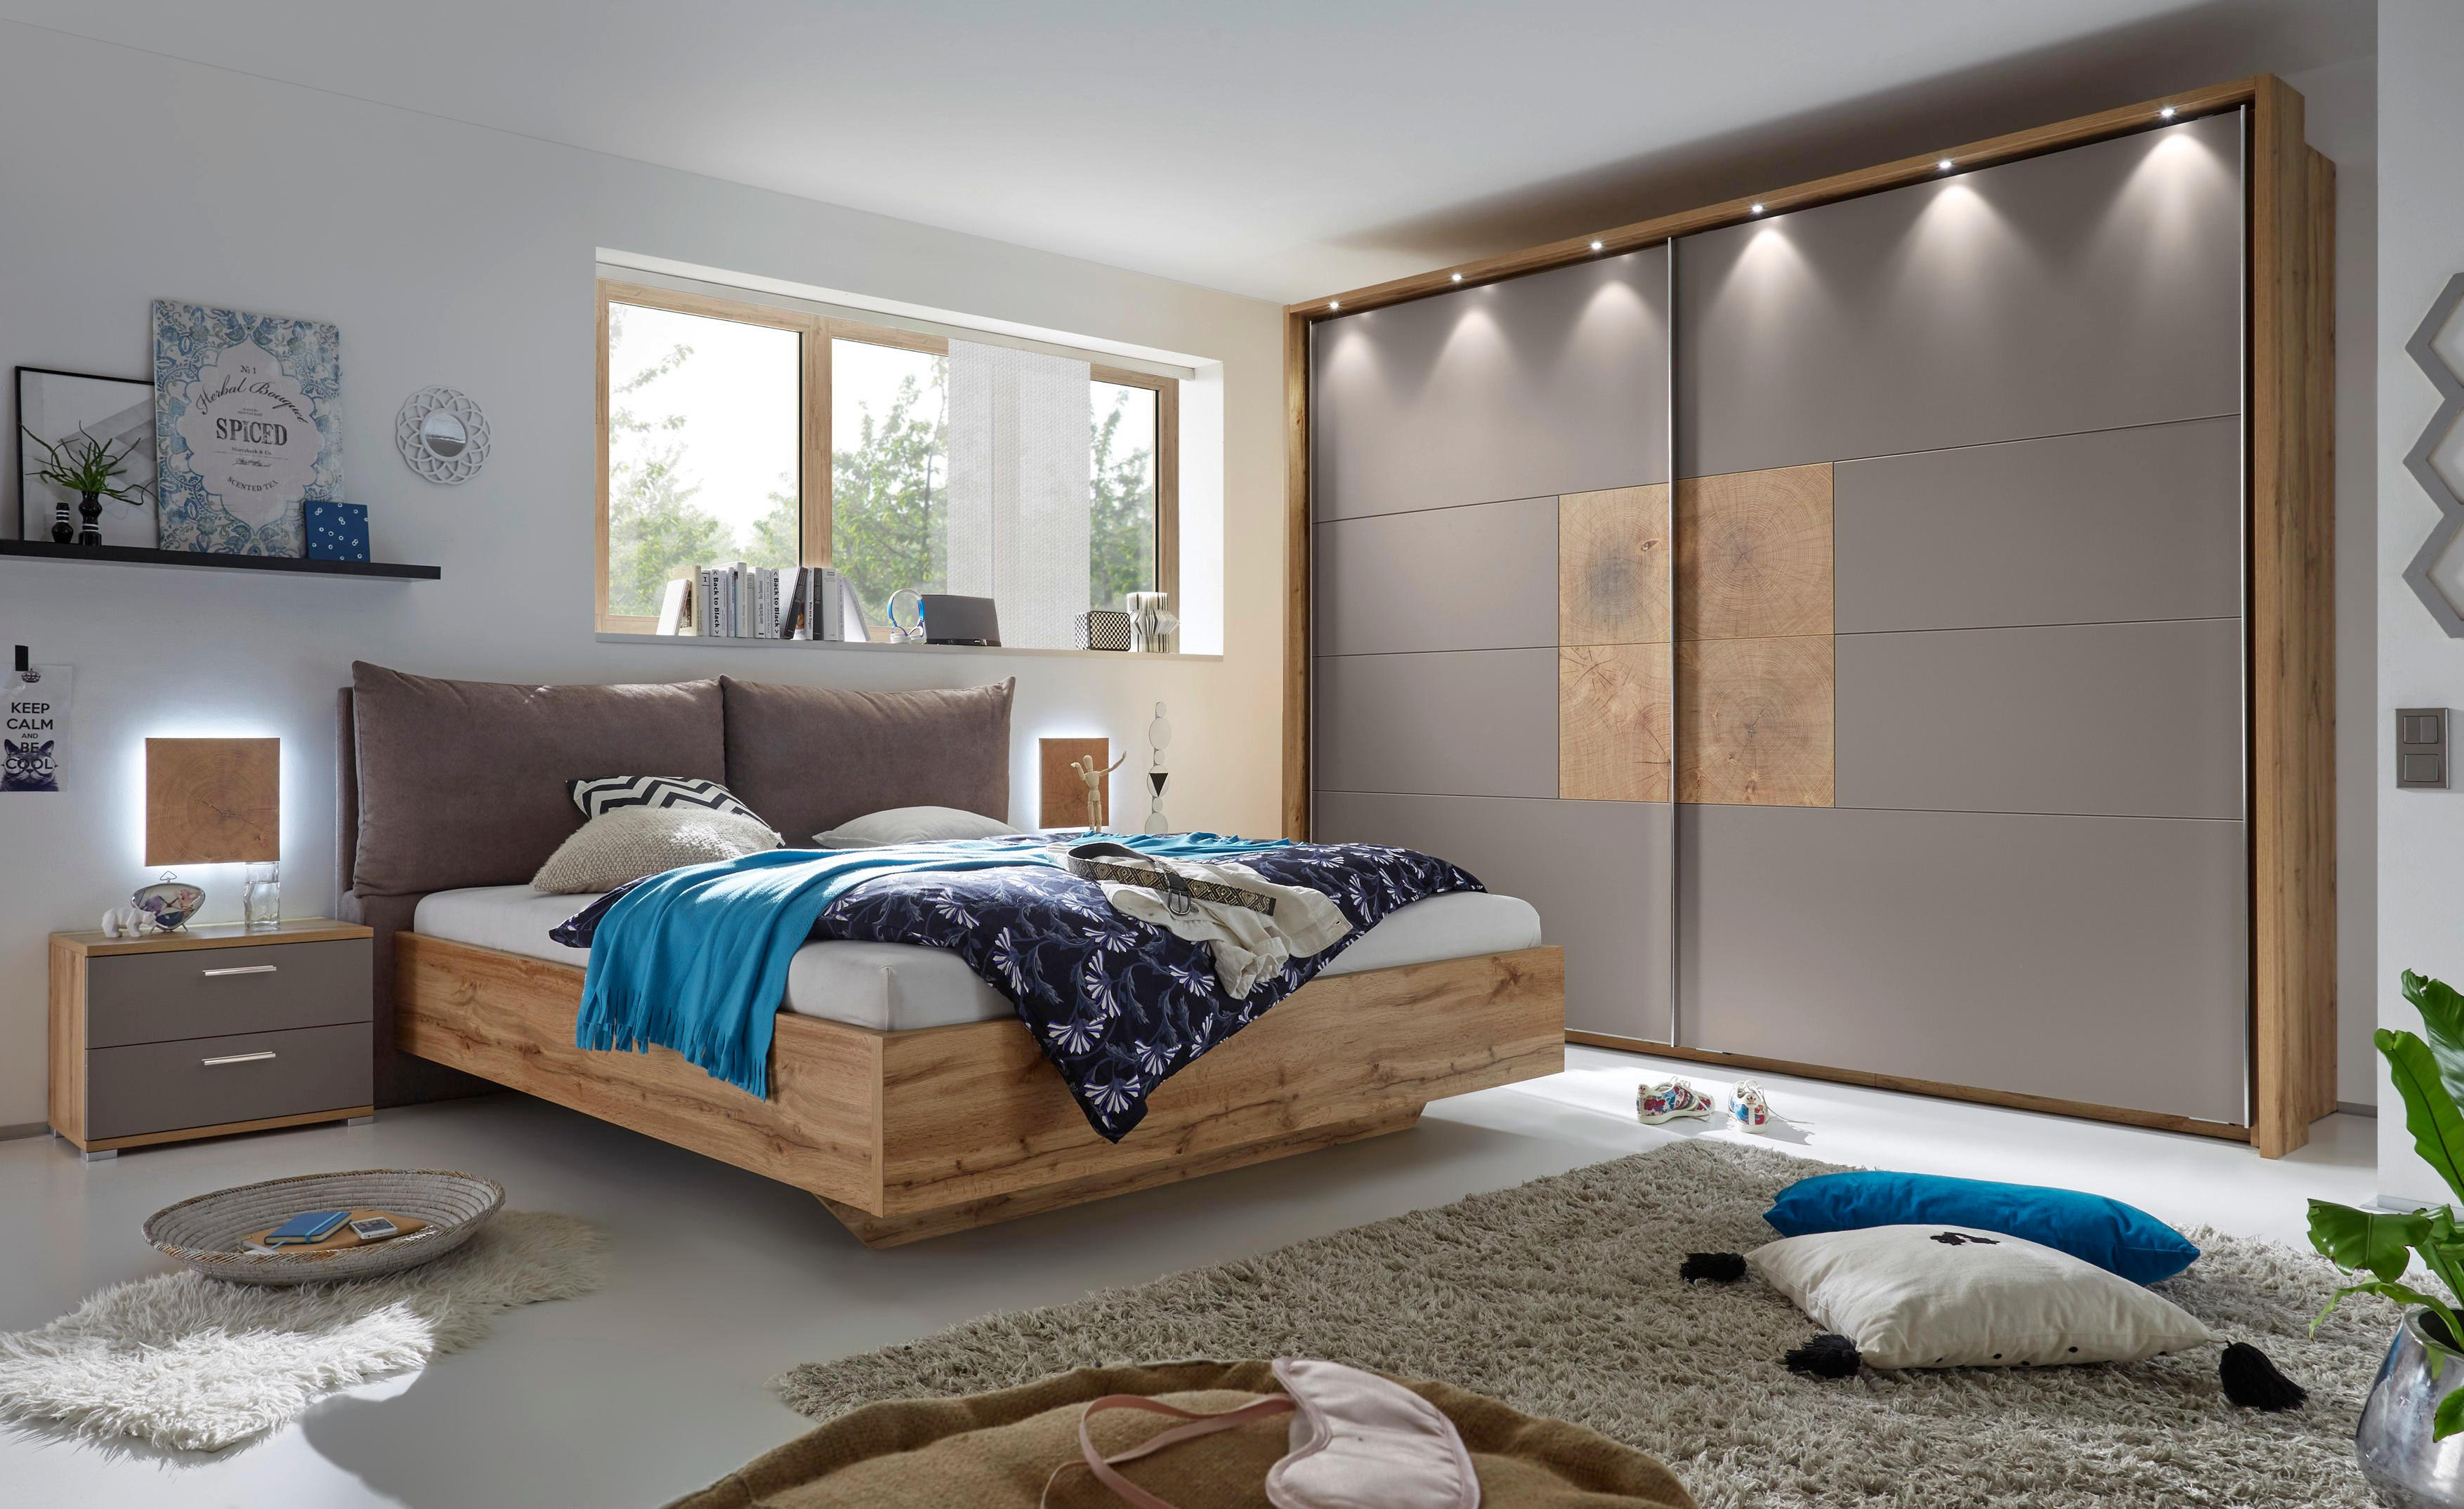 Schlafzimmer Set Xxl | Mia Félice Poster Set Collage Din A4 ...